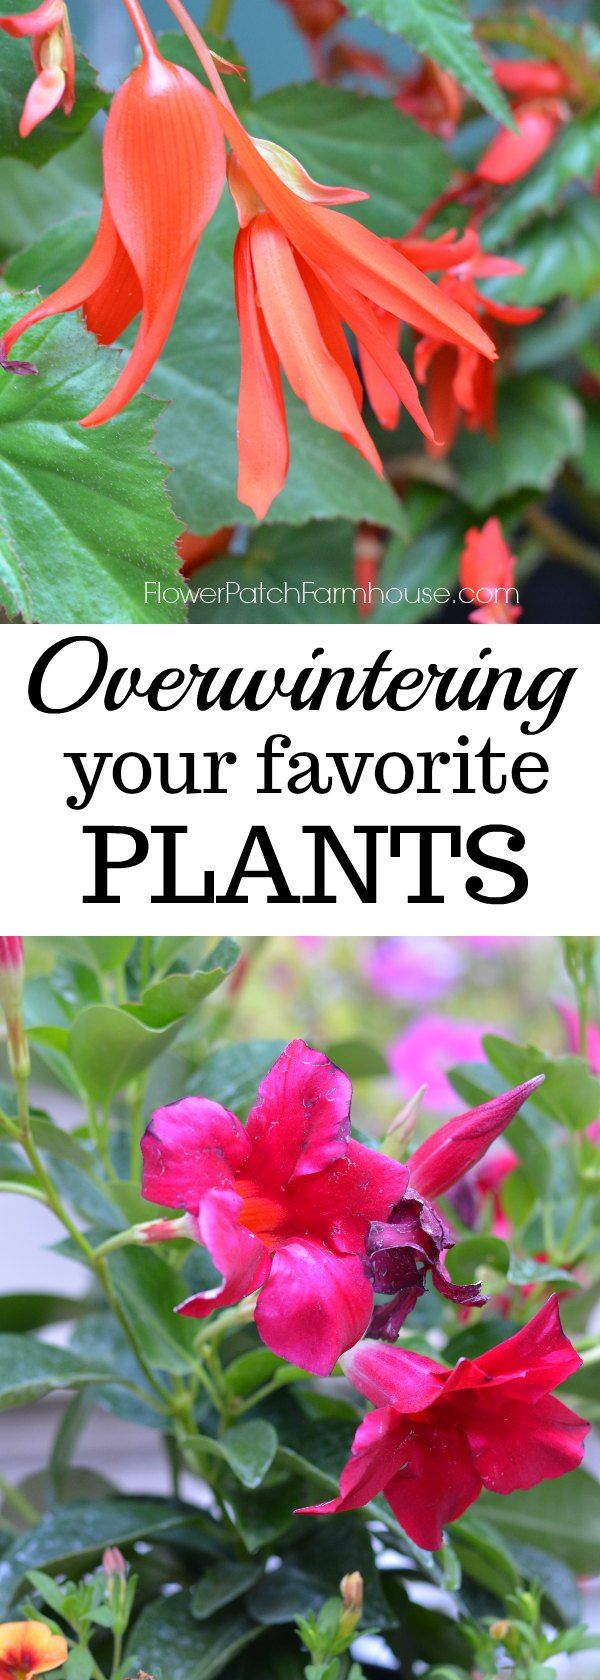 Over winter some of your favorite plants, come see how I treat them before bringing them in to keep them healthy and happy through the cold winter months and even get some blooms! via @FlowerpatchPam